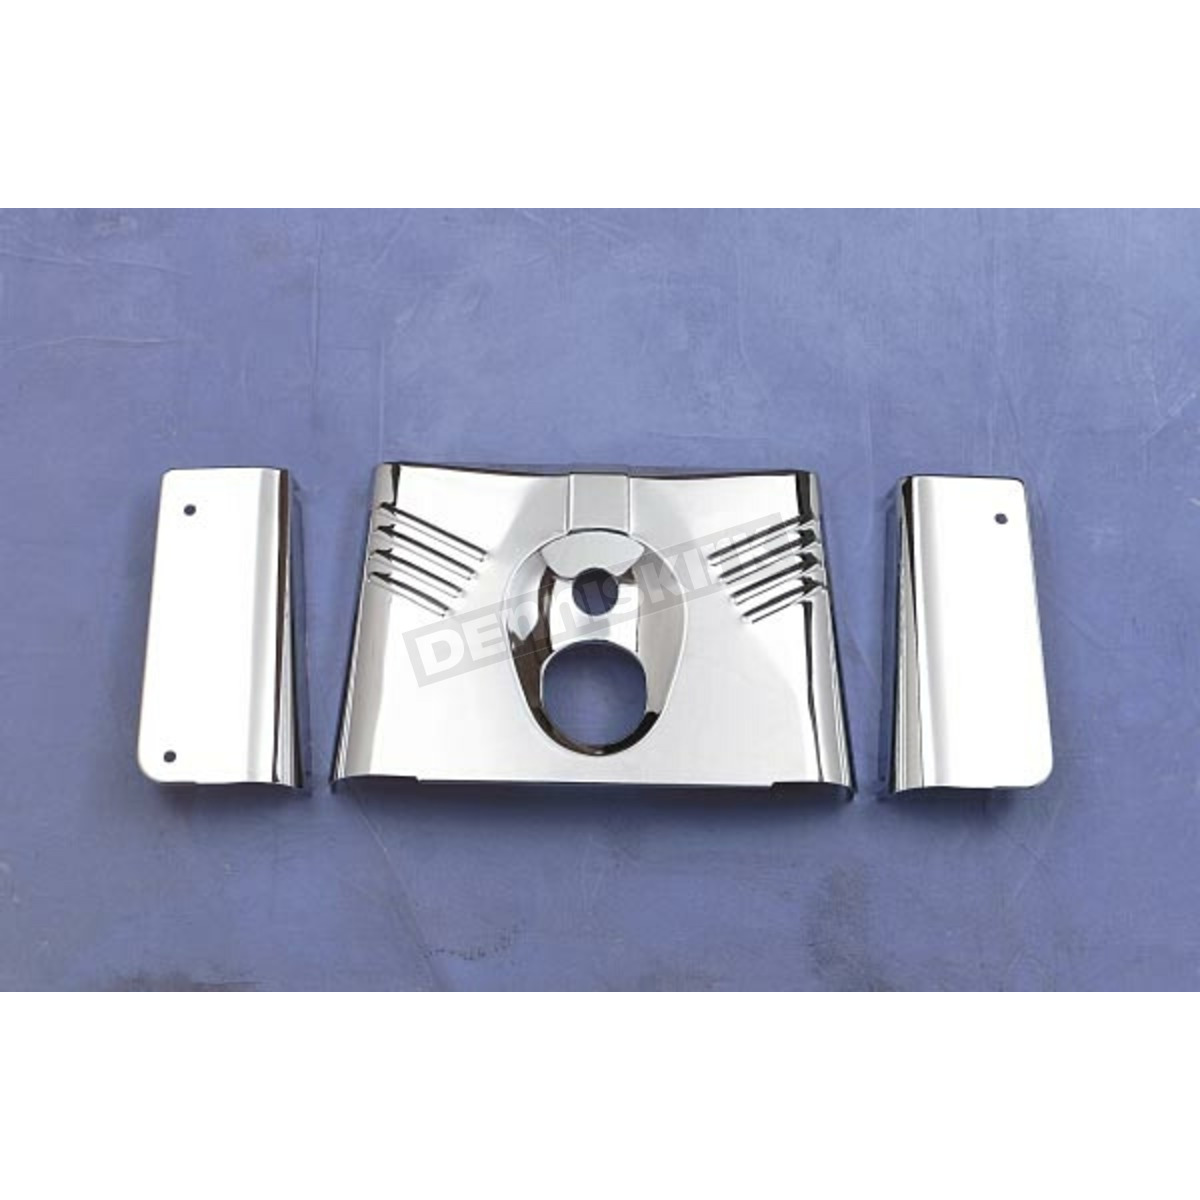 Three-Piece Chrome Fork Tins without Slider Covers - DS-222910